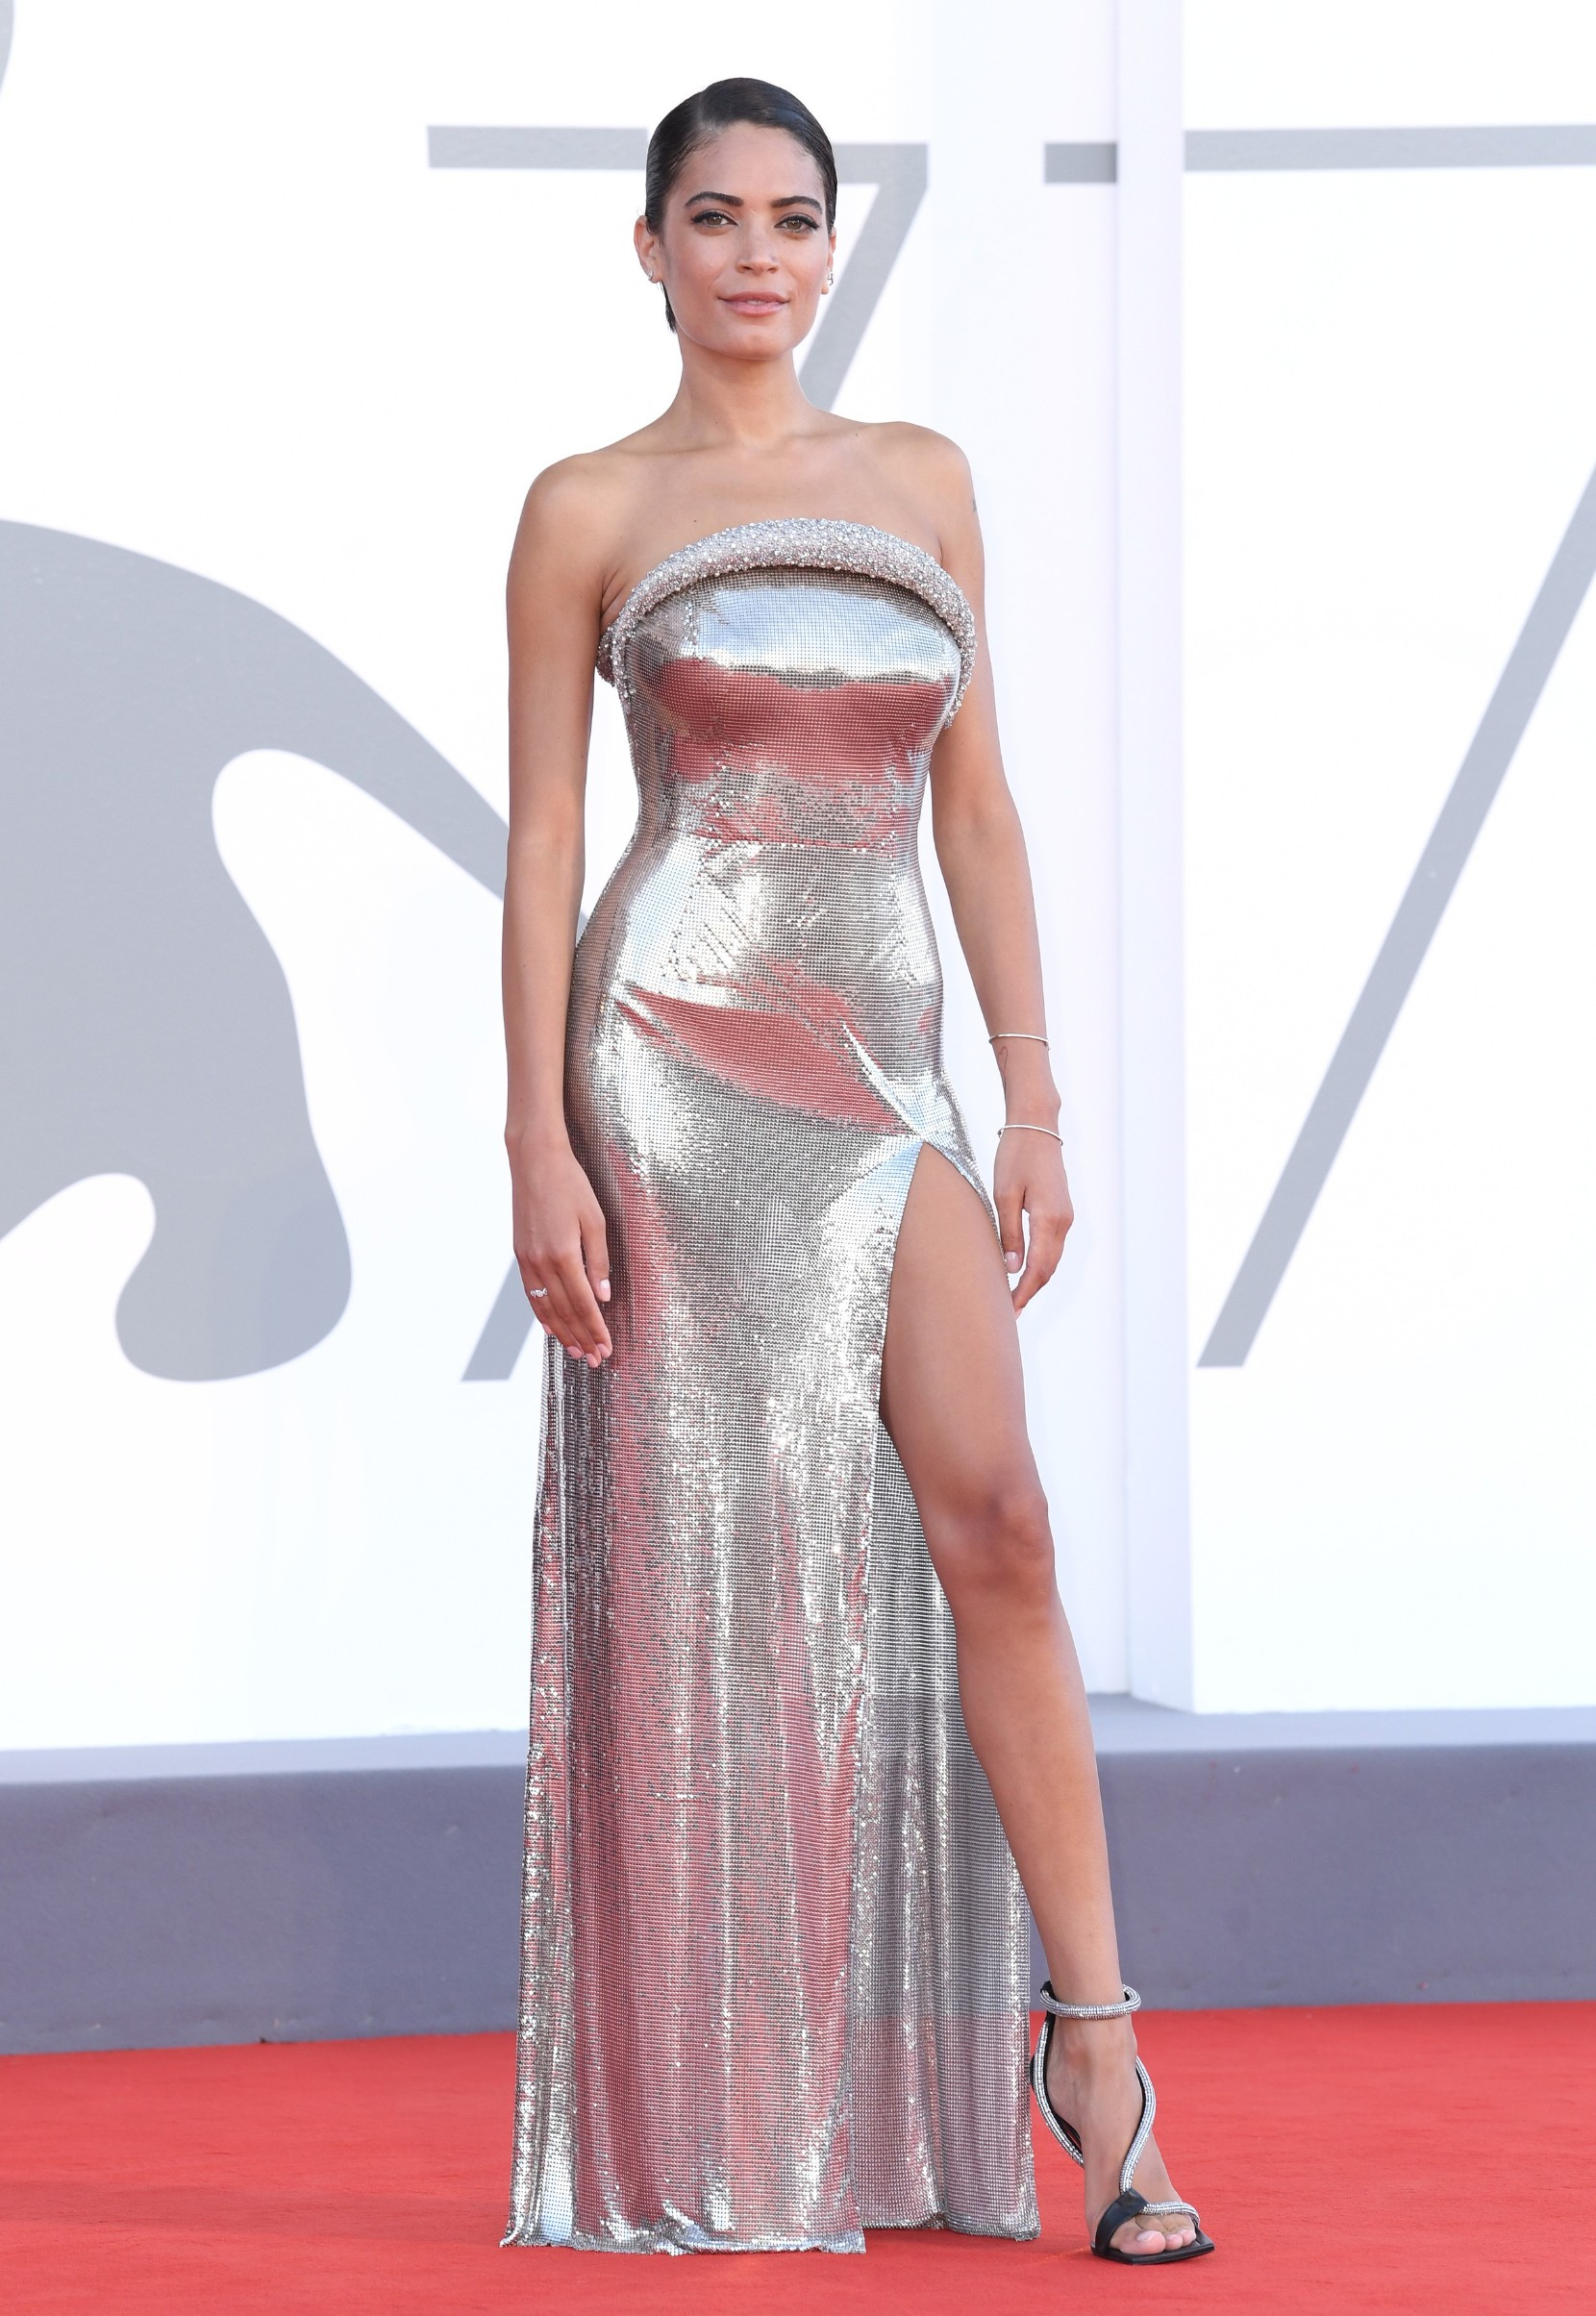 Elodie 'The Ties' premiere and Golden Lion for Lifetime Achievement Ceremony, 77th Venice International Film Festival, Italy - 02 Sep 2020,Image: 555937570, License: Rights-managed, Restrictions: , Model Release: no, Credit line: David Fisher / Shutterstock Editorial / Profimedia